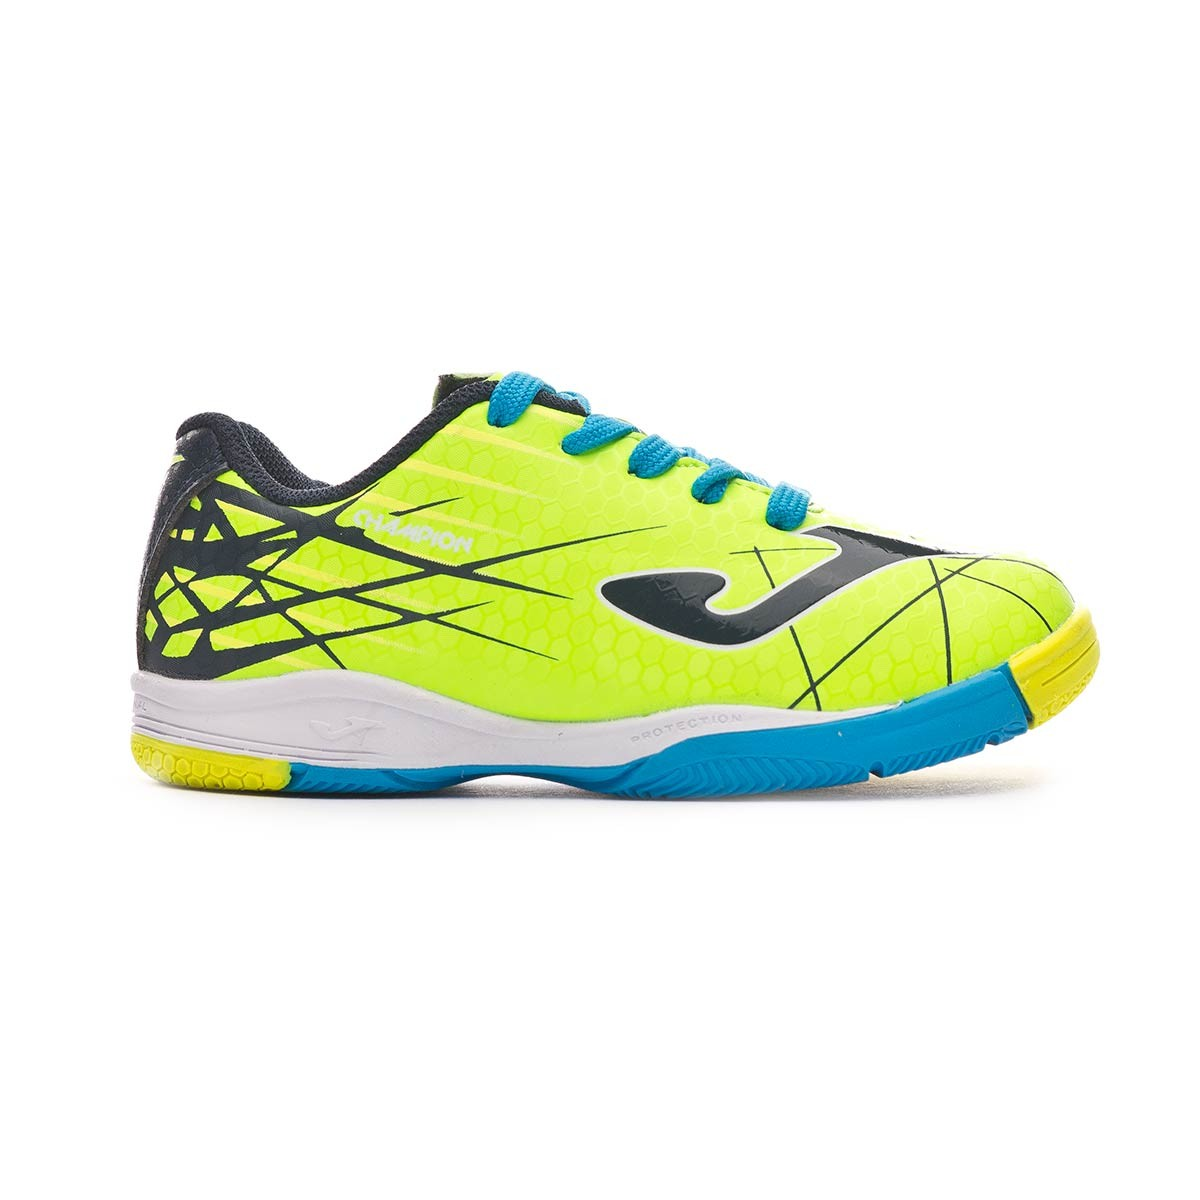 cfd44d093 Futsal Boot Joma Champion Niño Lime-Turquoise - Football store Fútbol  Emotion